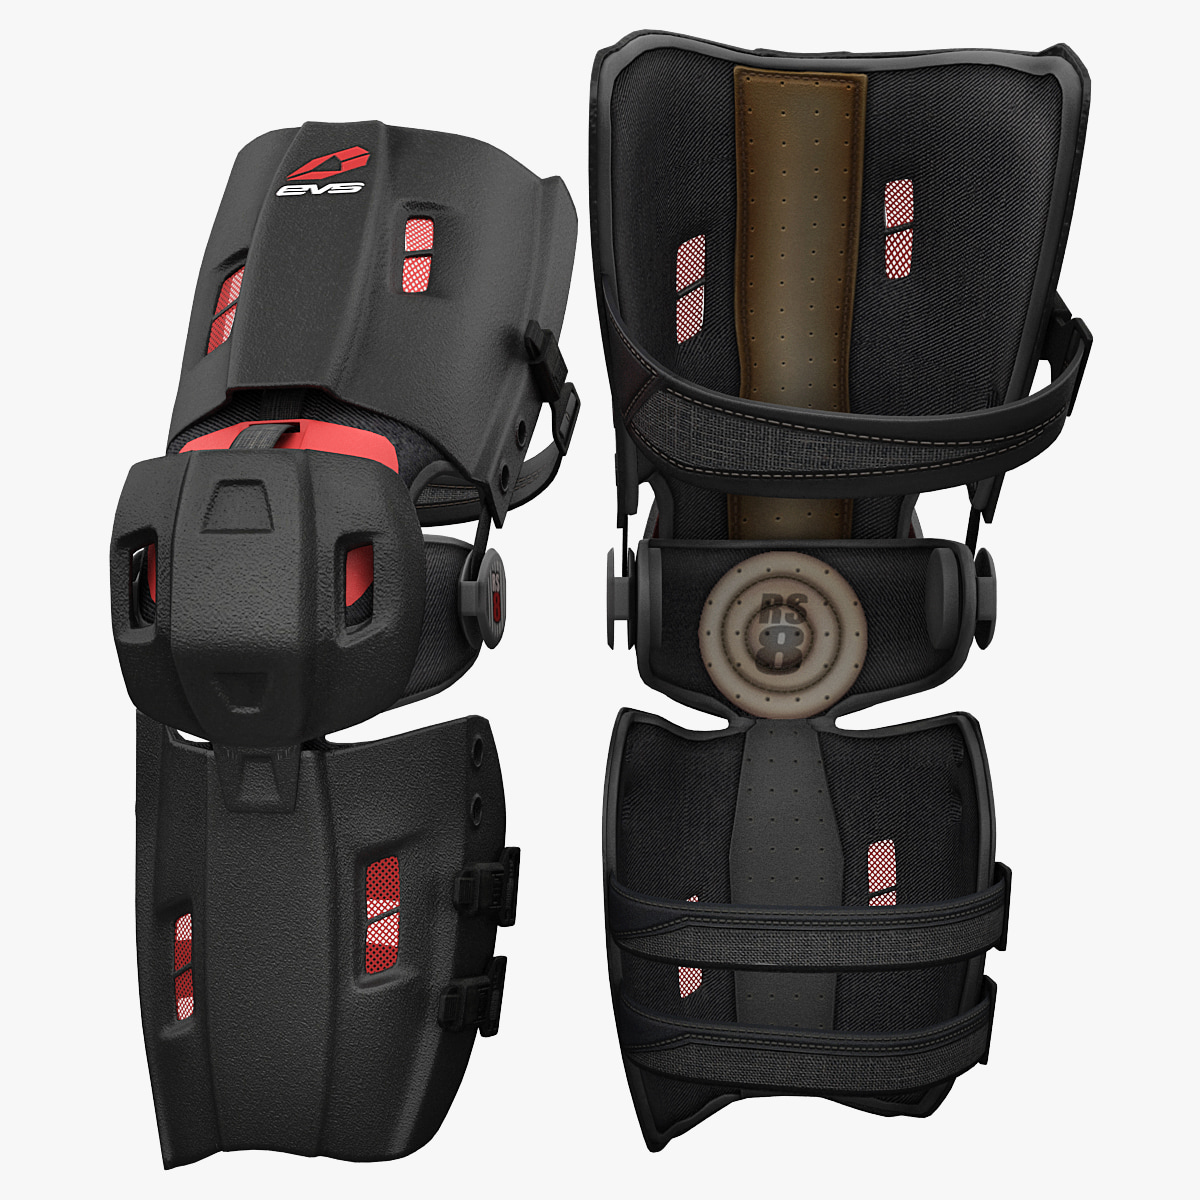 Motocross_Knee_Brace_EVS_RS8_0002_2.jpg